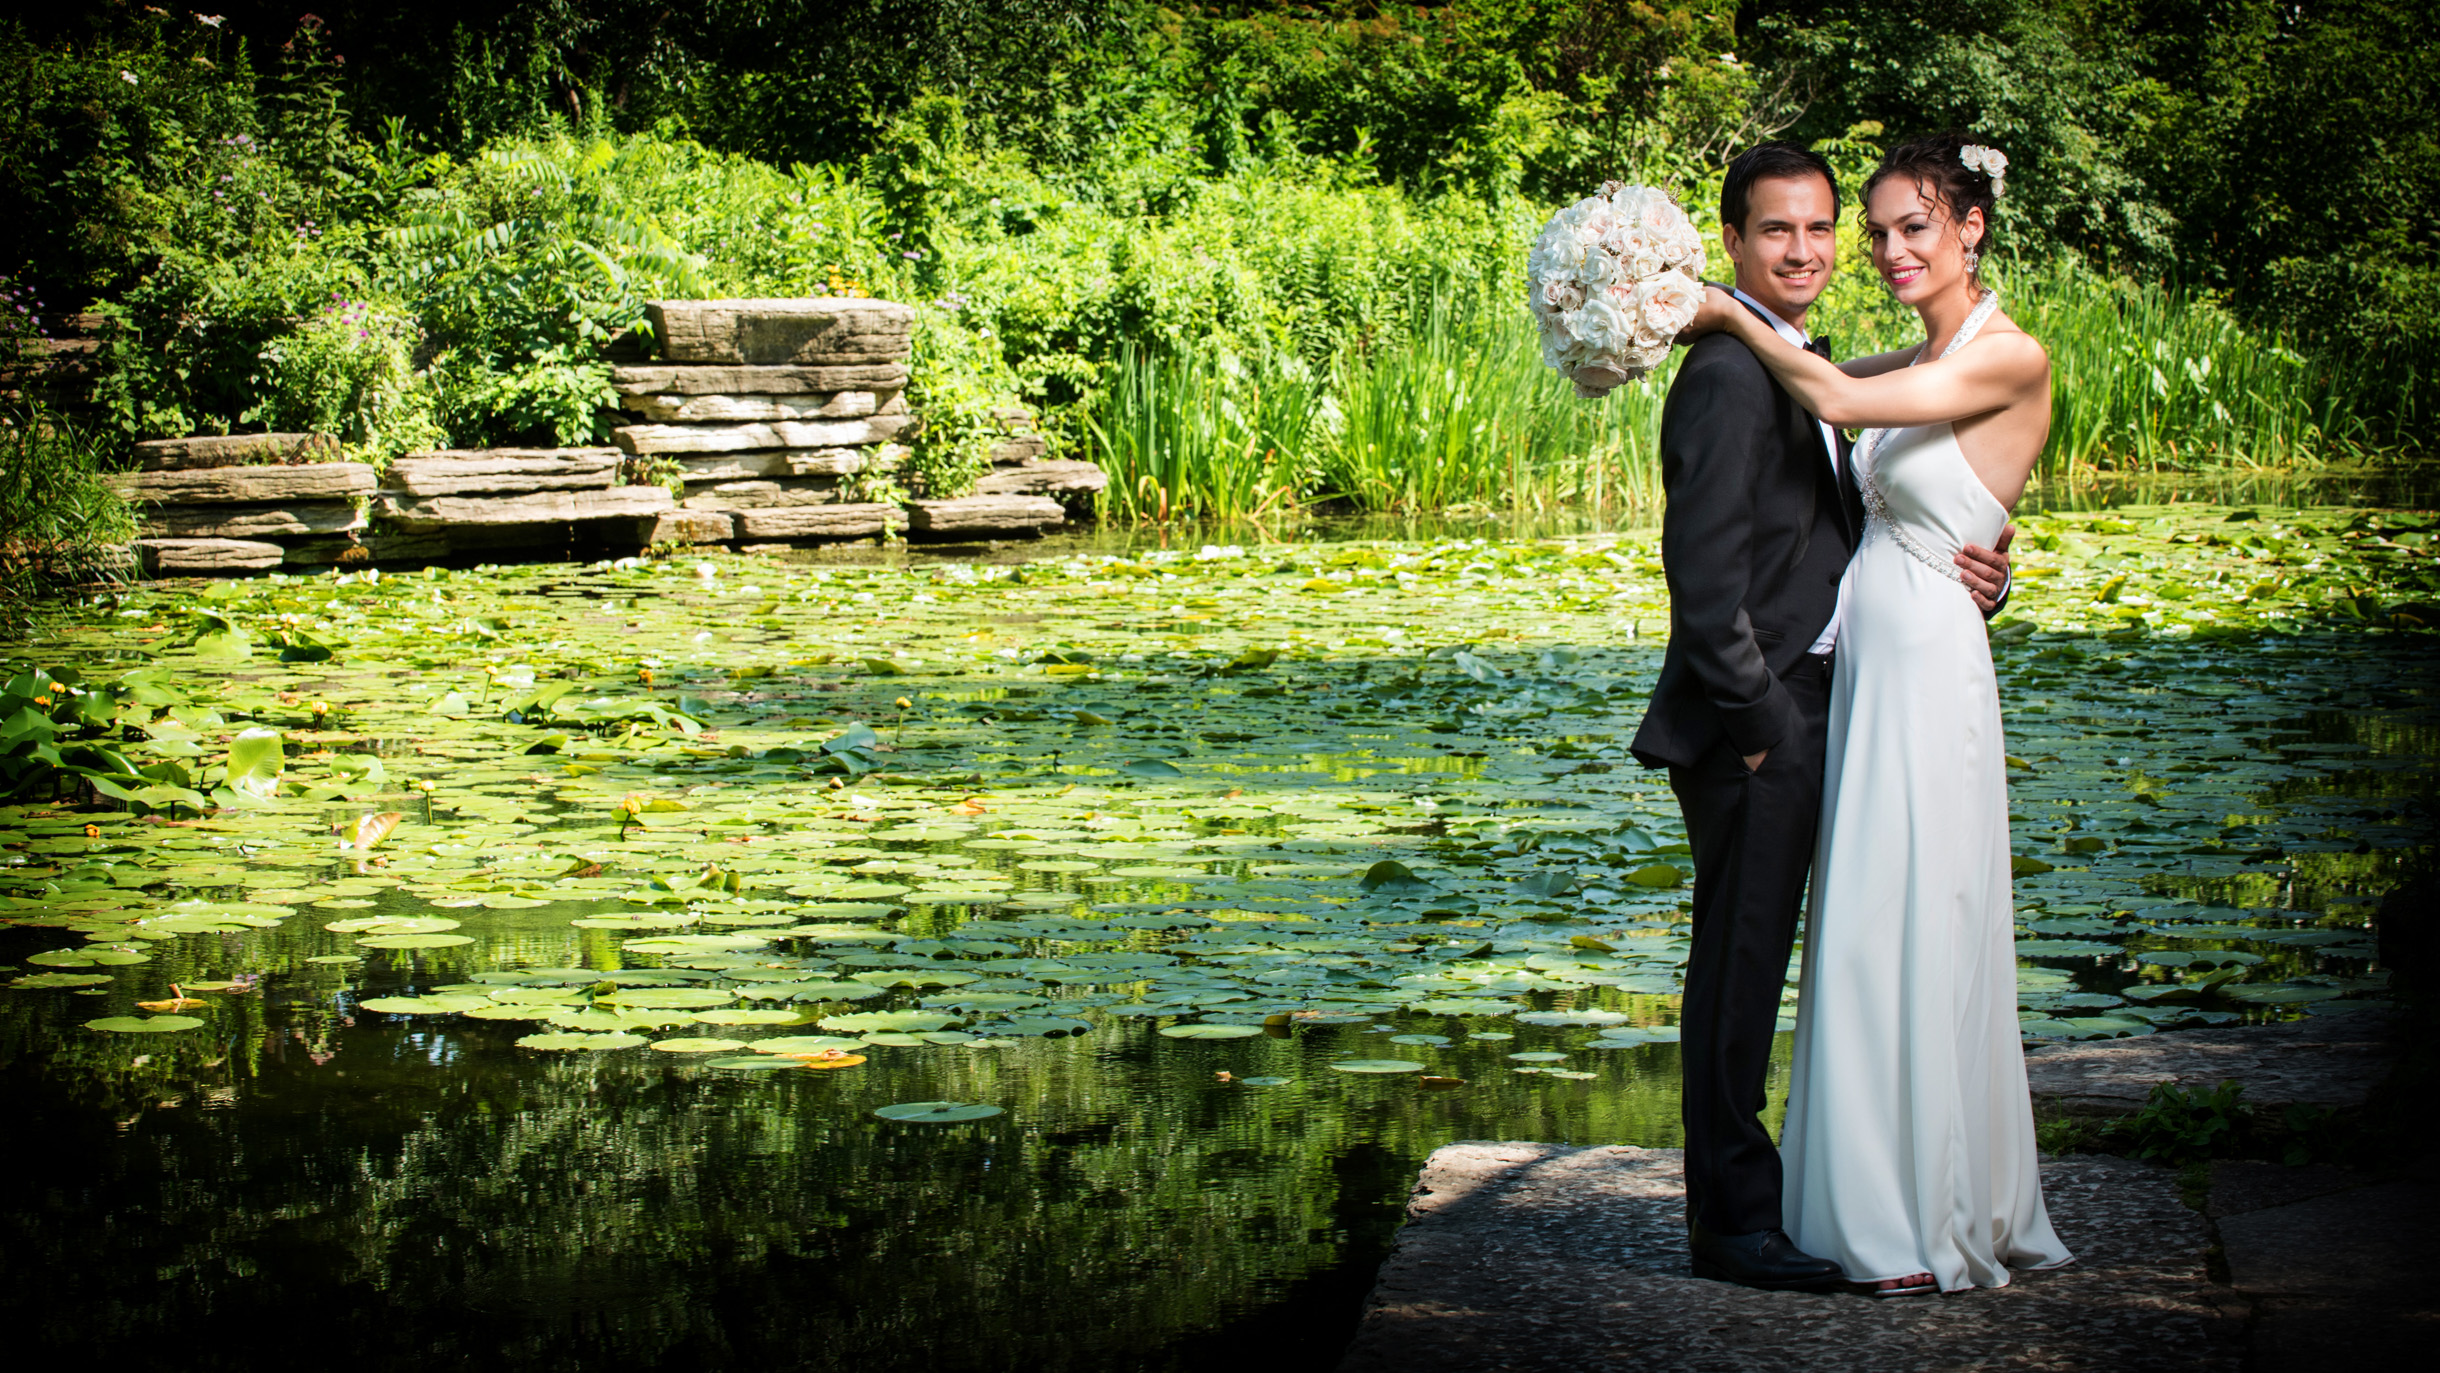 Bride and Groom on wedding at the alfred caldwell lily pool in Lincoln Park